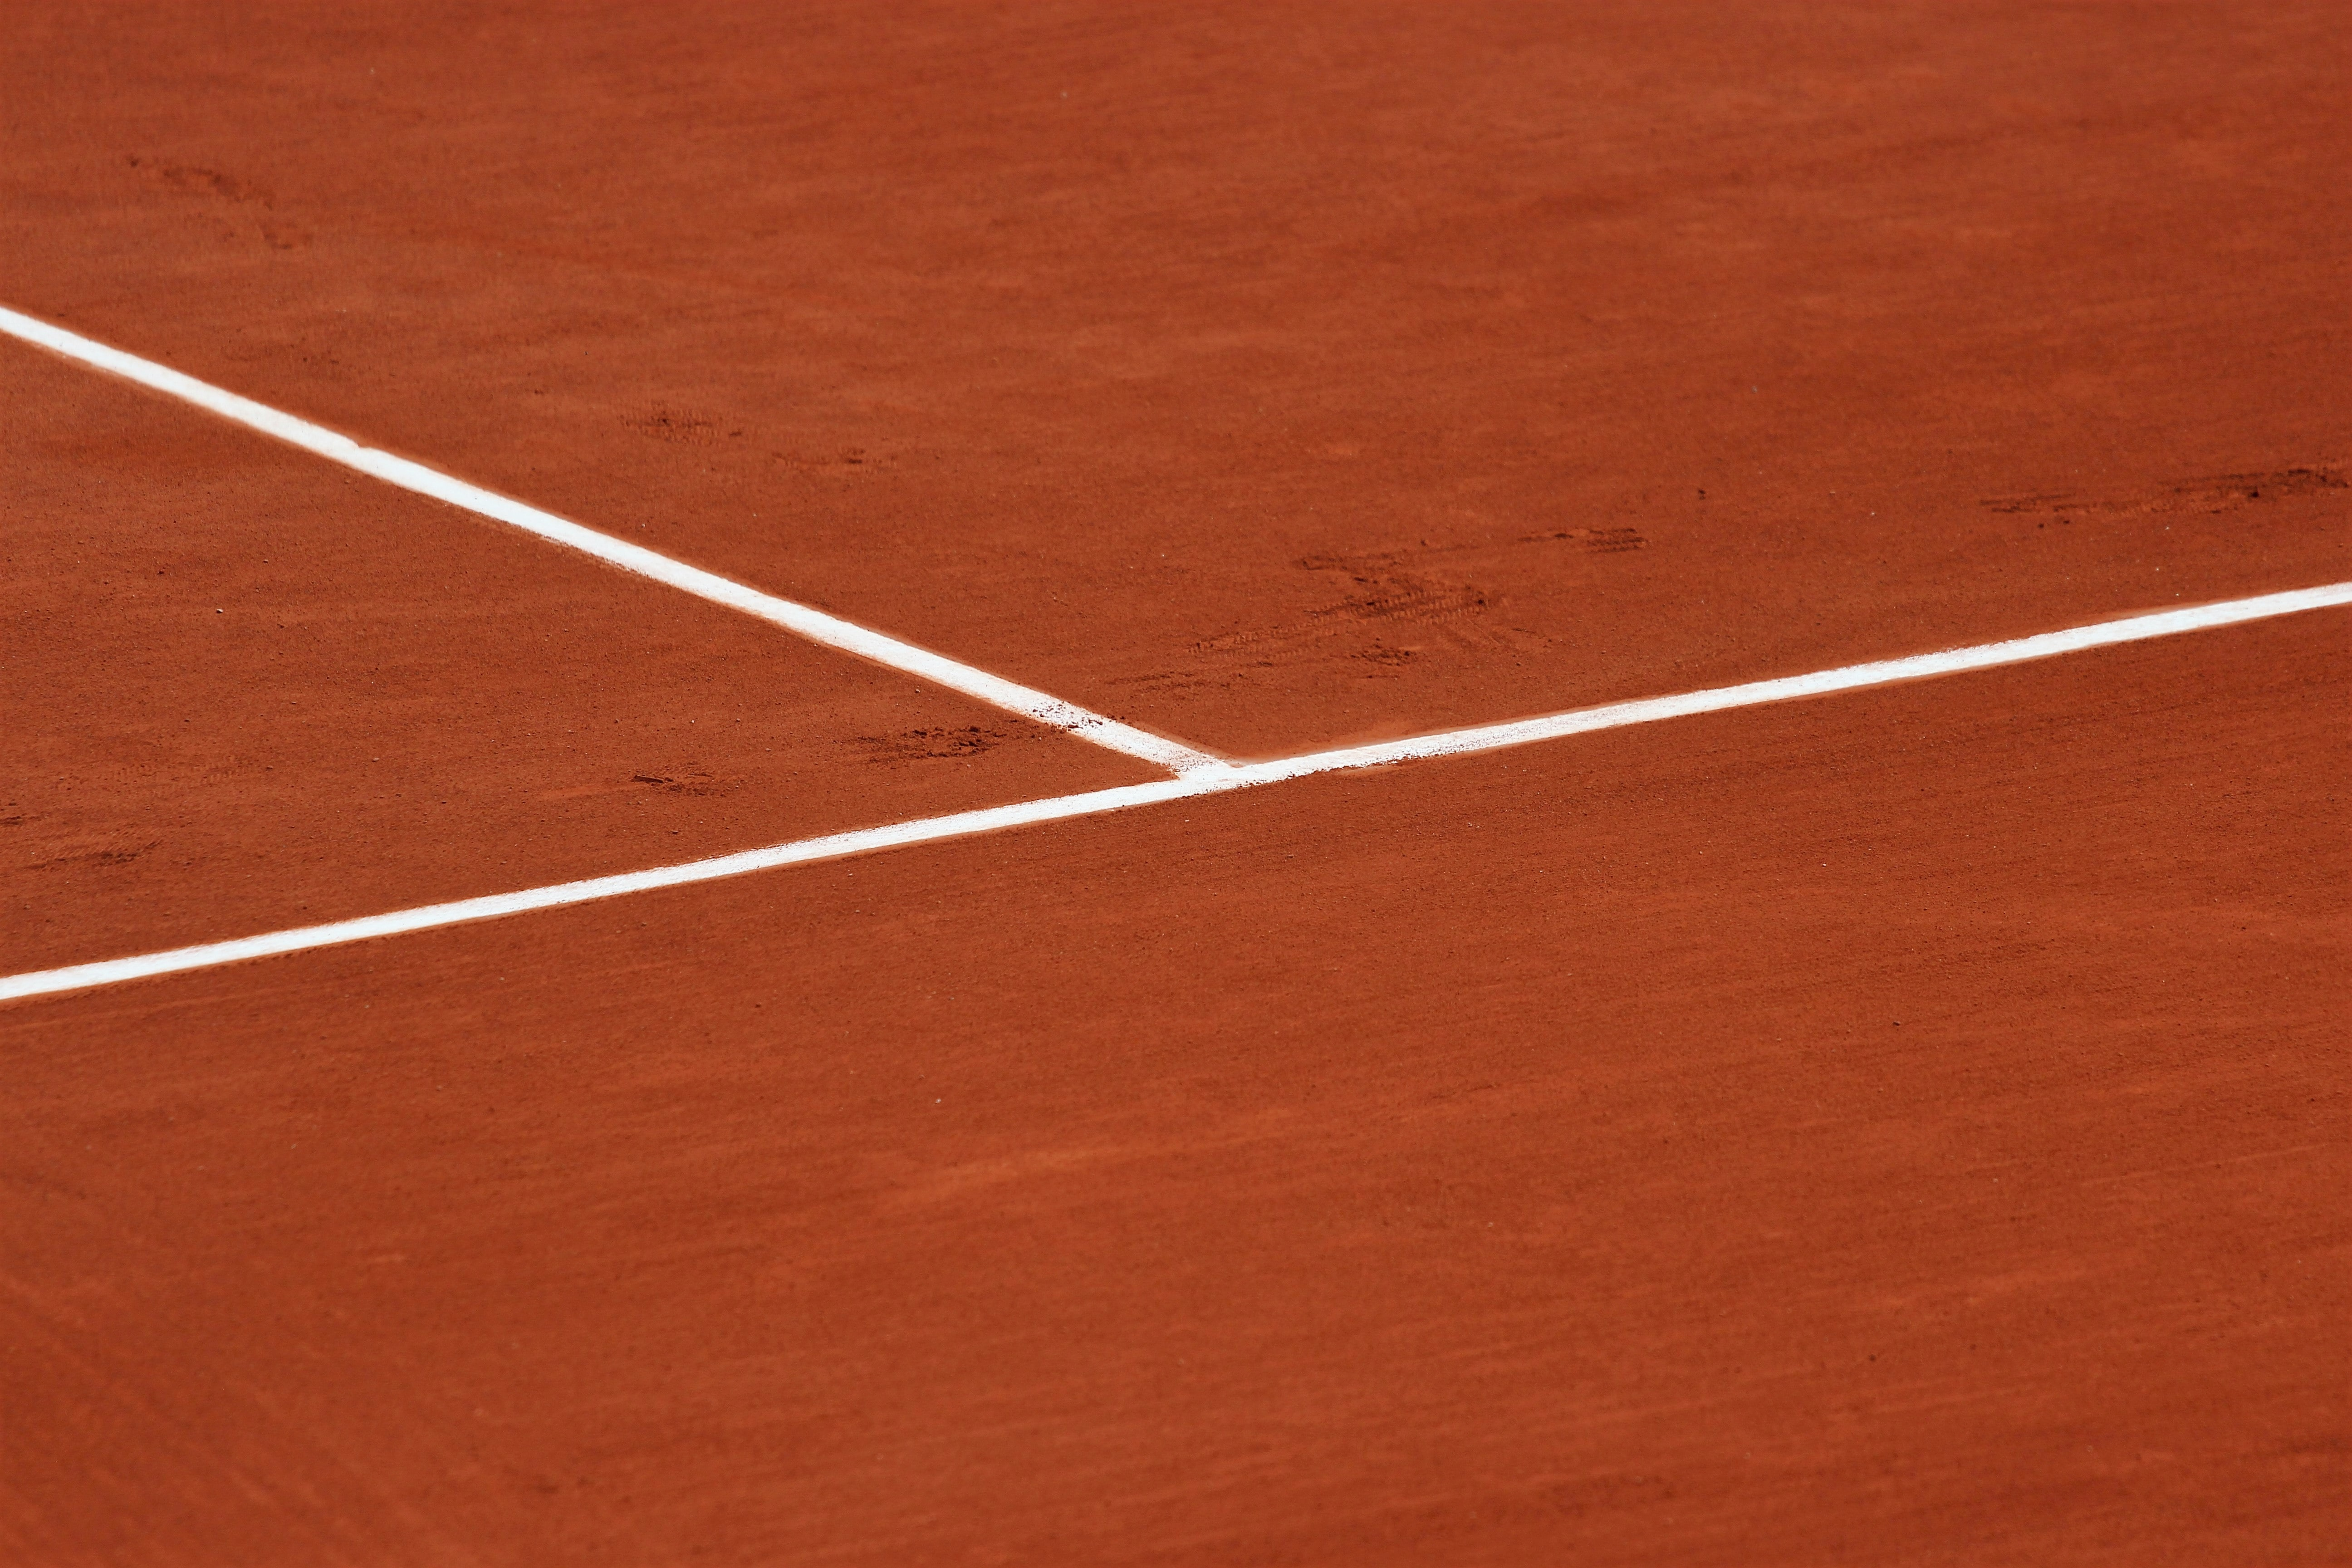 The view of a white tennis line markings on a tennis court